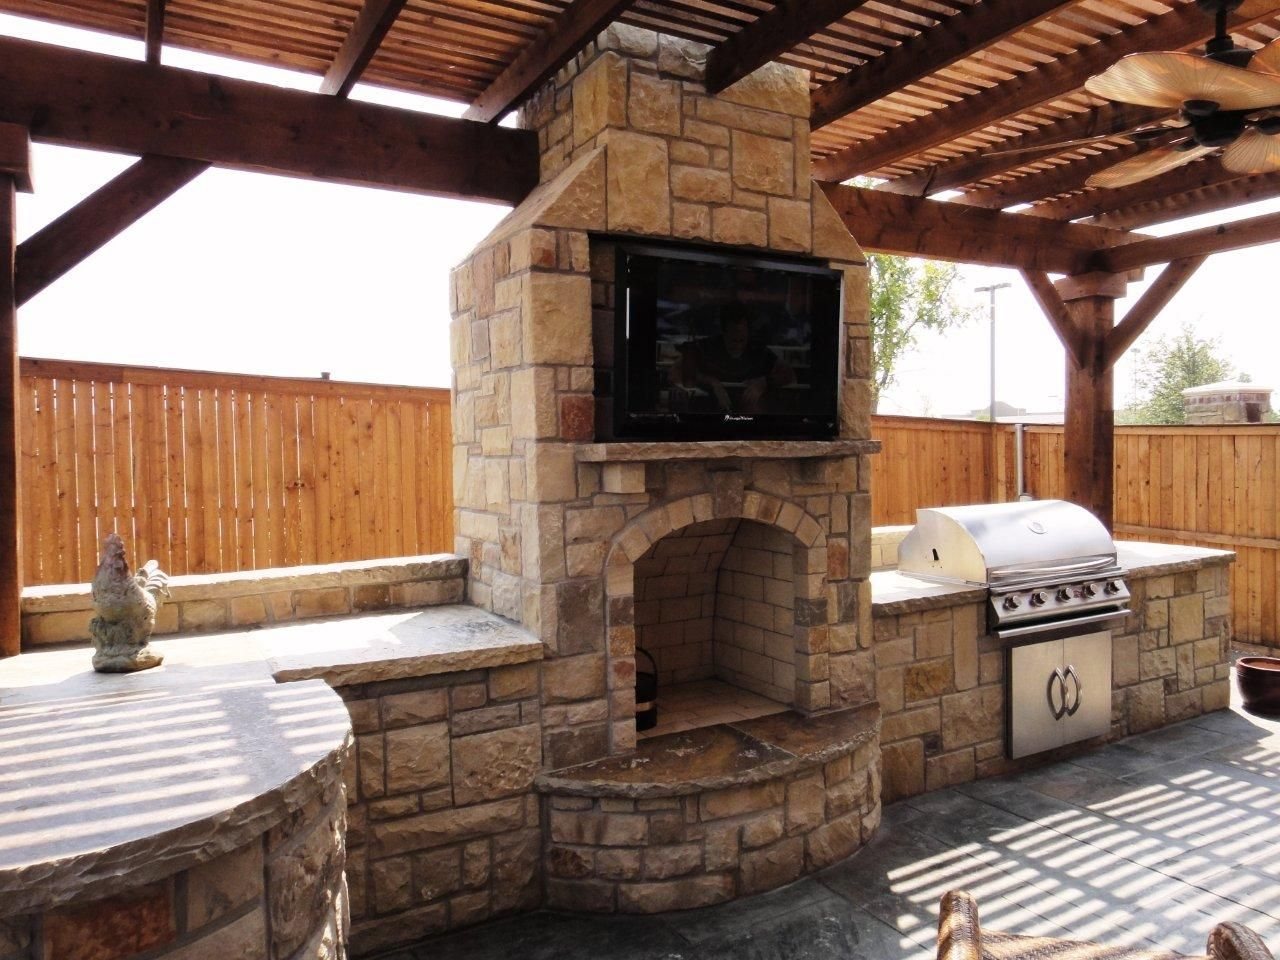 Outdoor Kitchen With Fireplace Refinish Cabinets Cost Fireplaces In Dallas Frisco